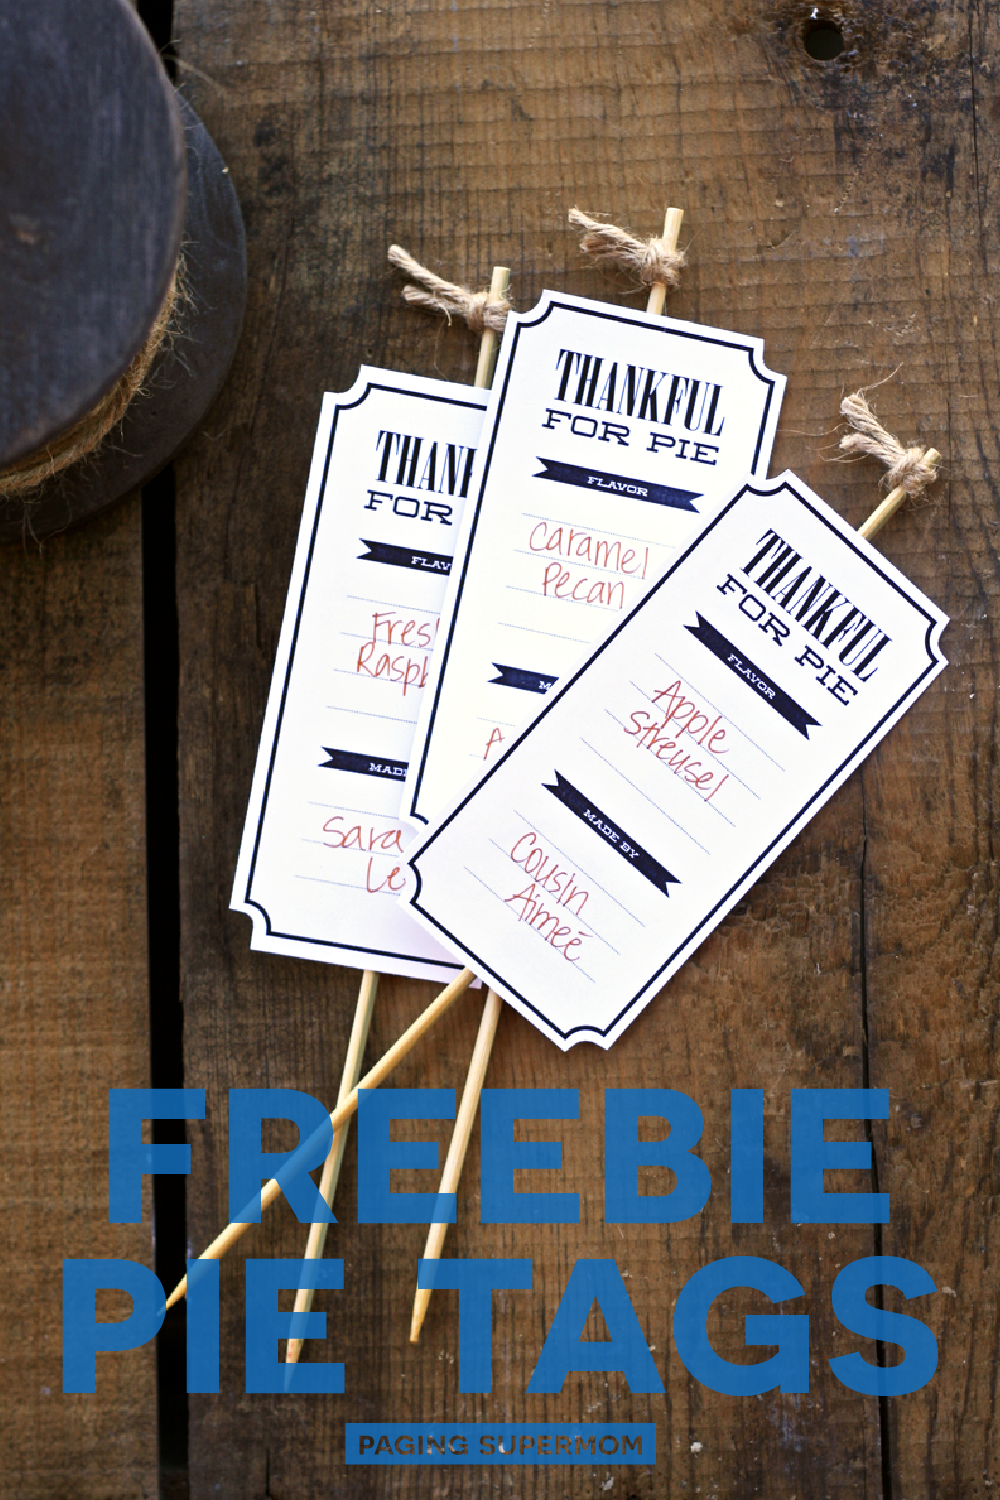 Free Printable Thanksgiving Pie Tags for your #Thanksgiving Feast via @PagingSupermom